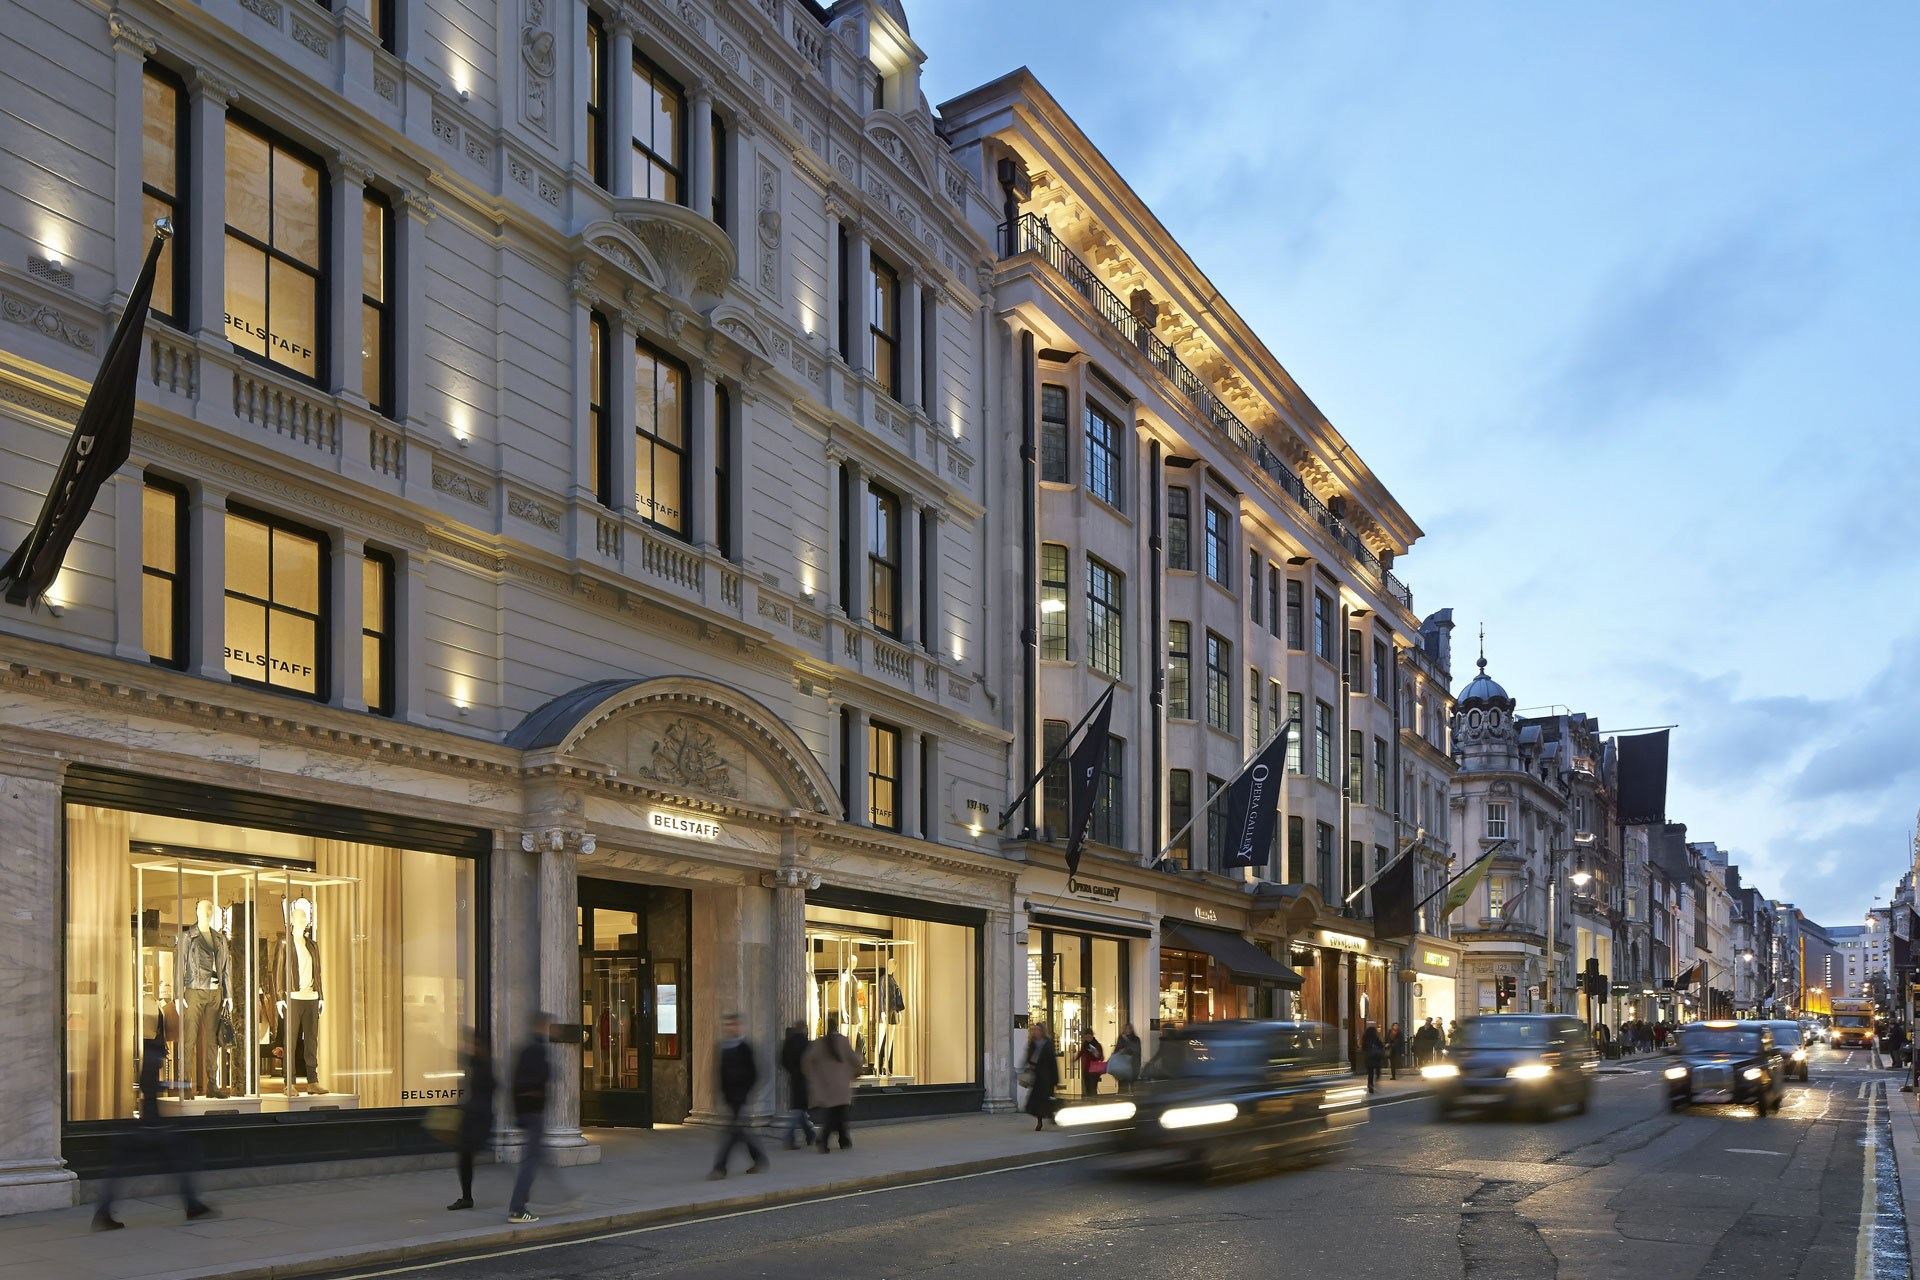 Vita notturna londra mayfair bond street nightlife city for Quartiere mayfair londra